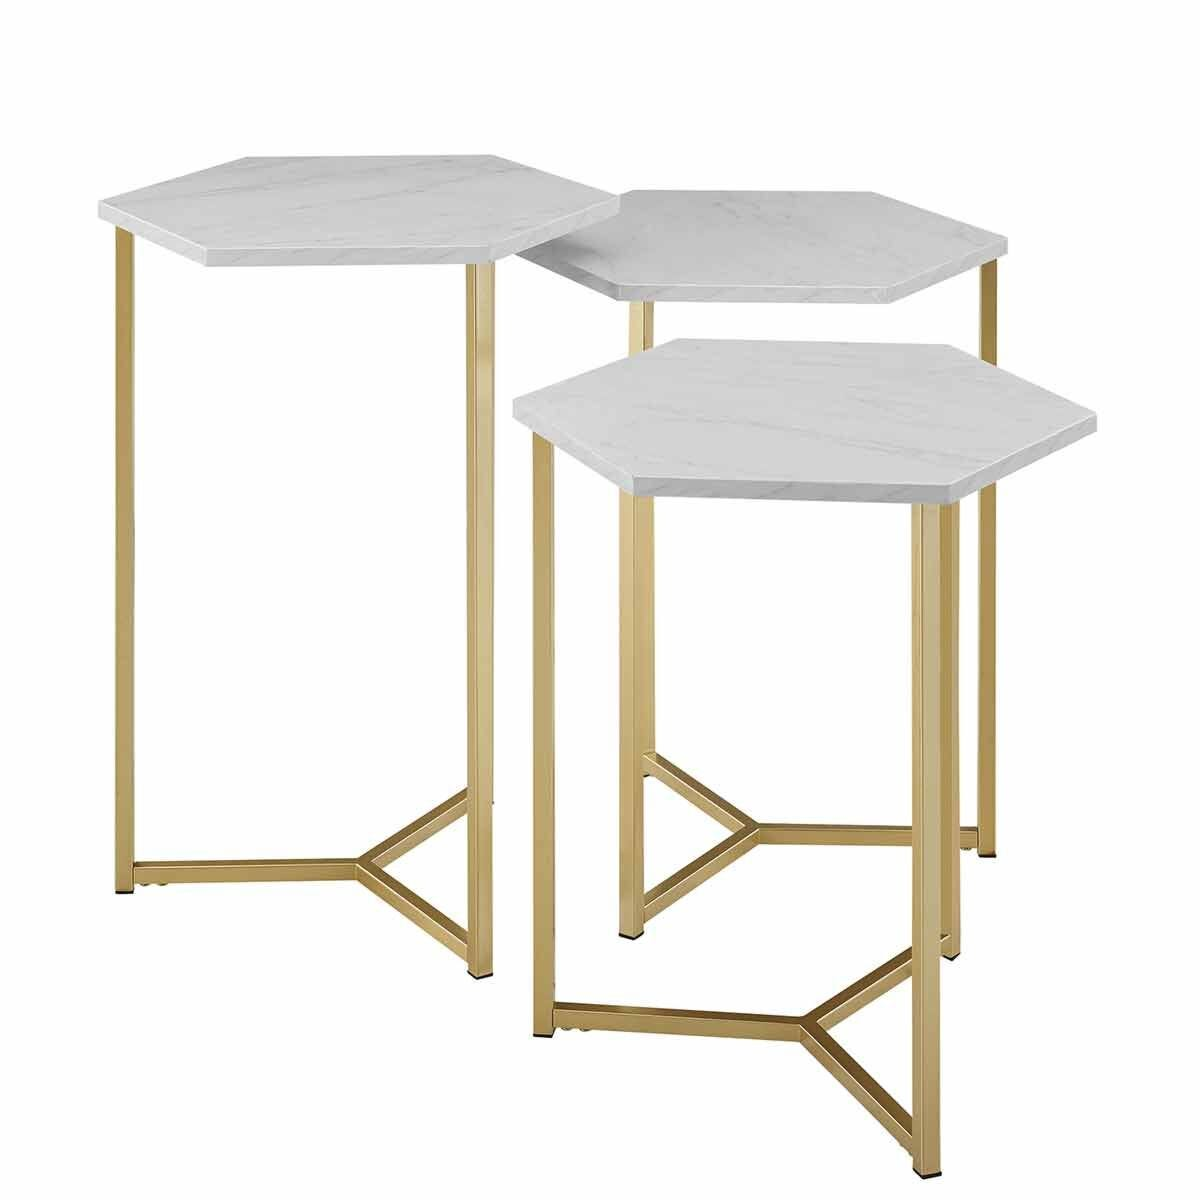 Chicago Modern Nesting Tables Set of 3 White Marble